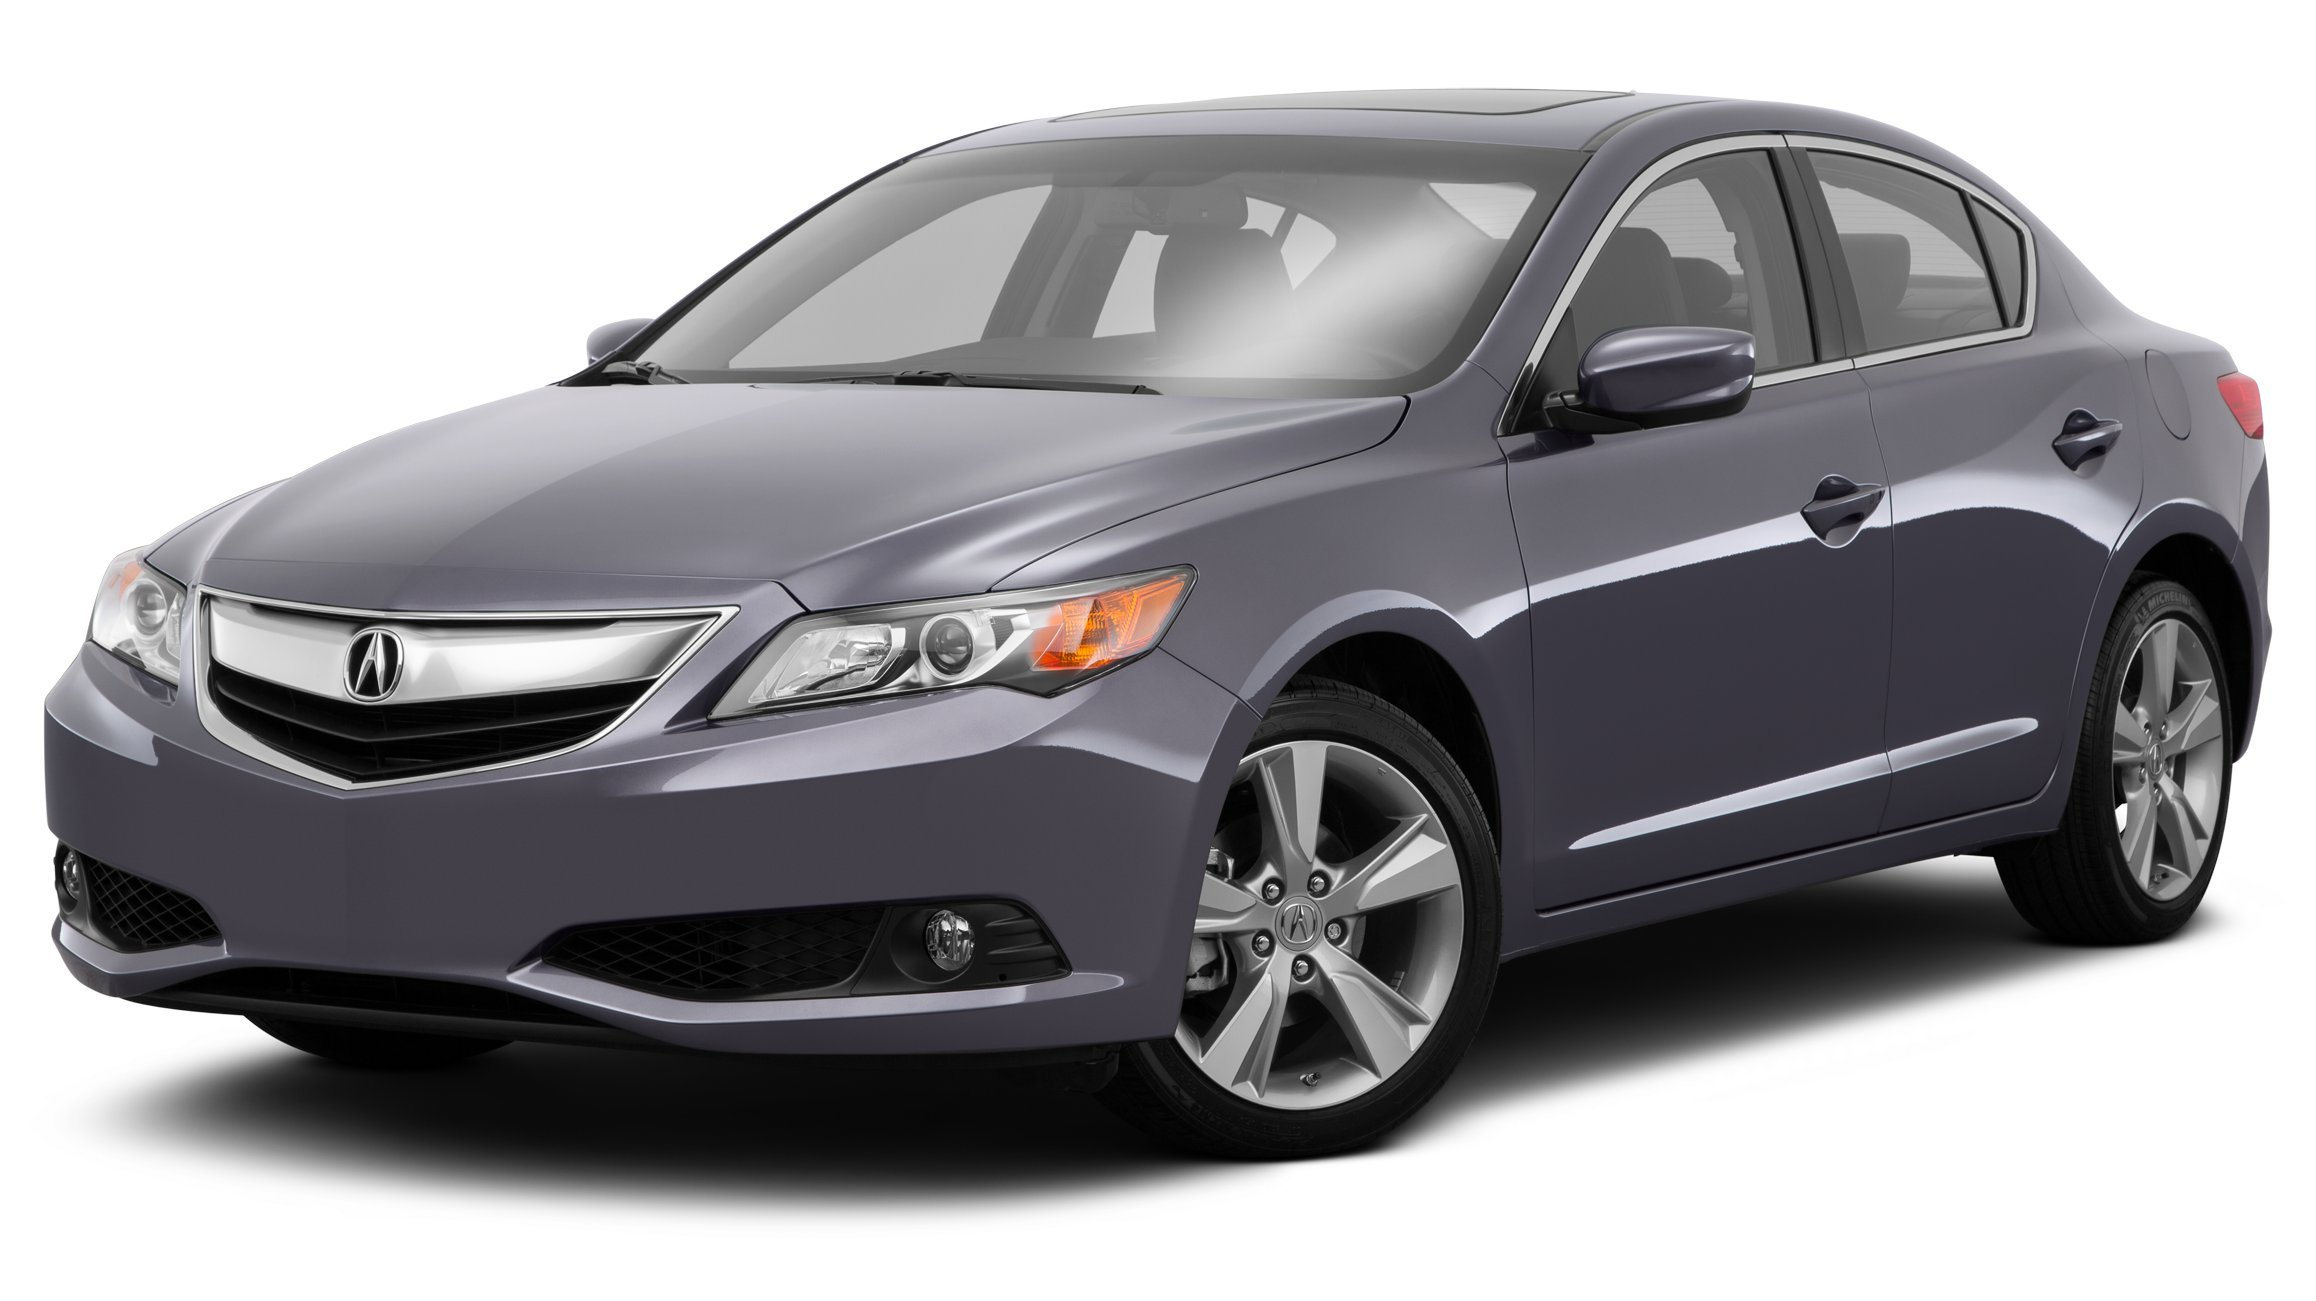 2015 honda accord reviews images and specs vehicles. Black Bedroom Furniture Sets. Home Design Ideas